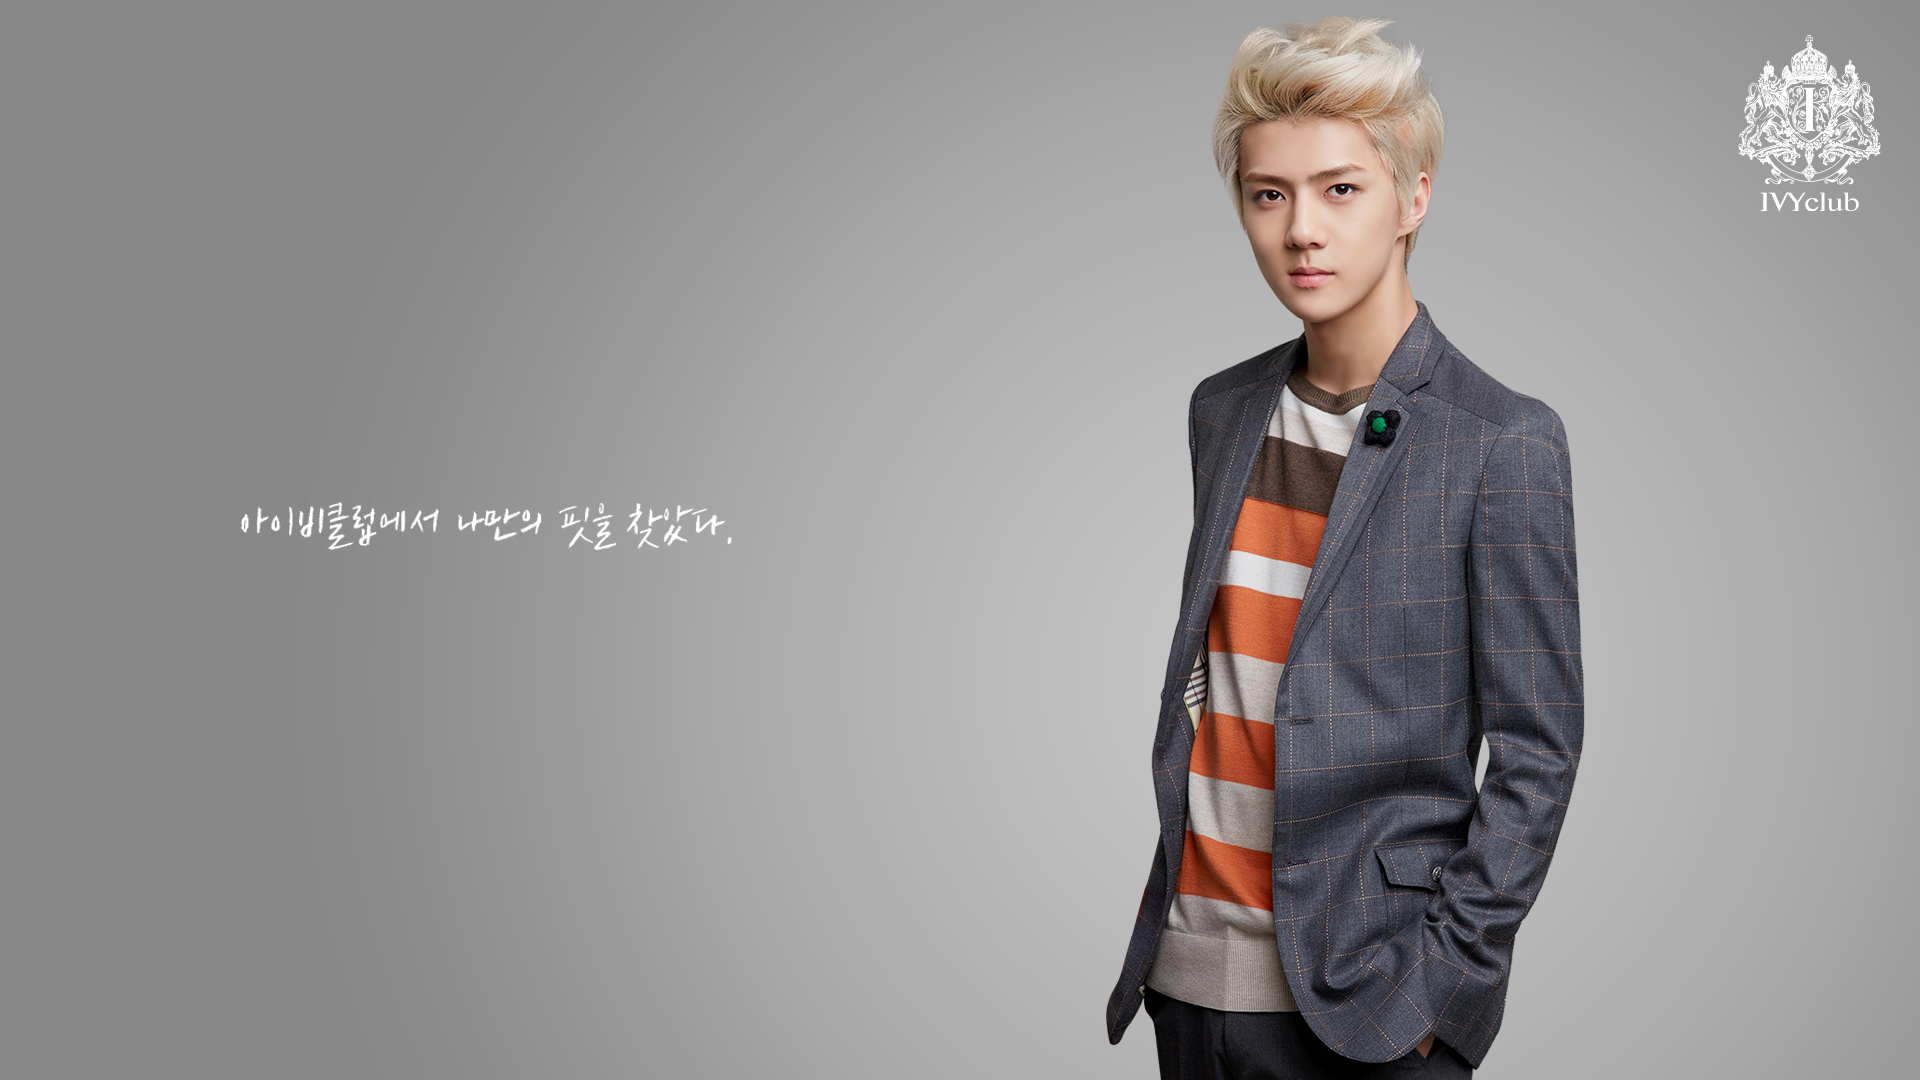 exo sehun wallpaper by - photo #28